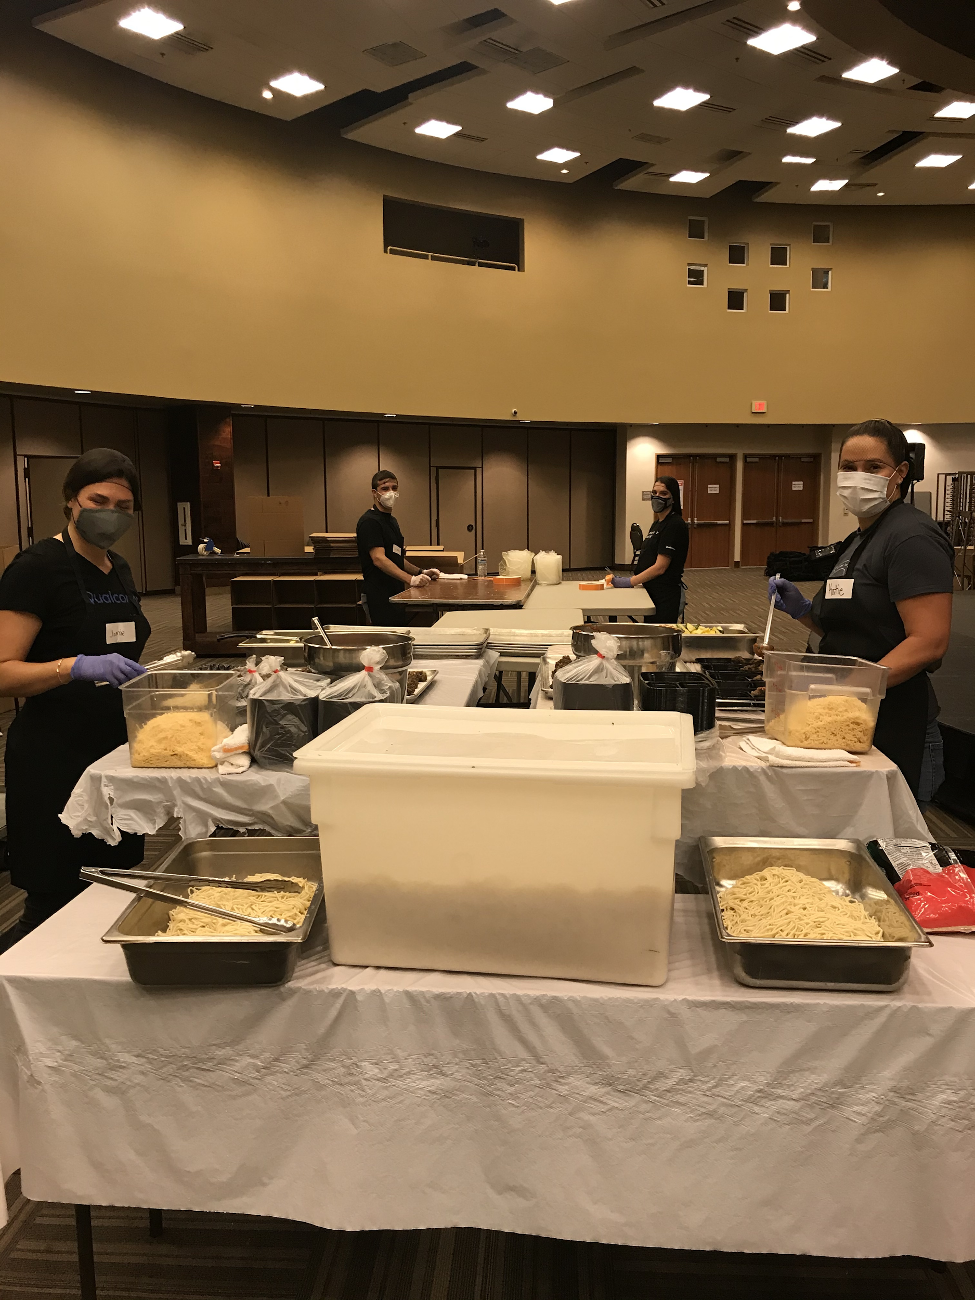 Image of volunteers wearing masks and cooking food